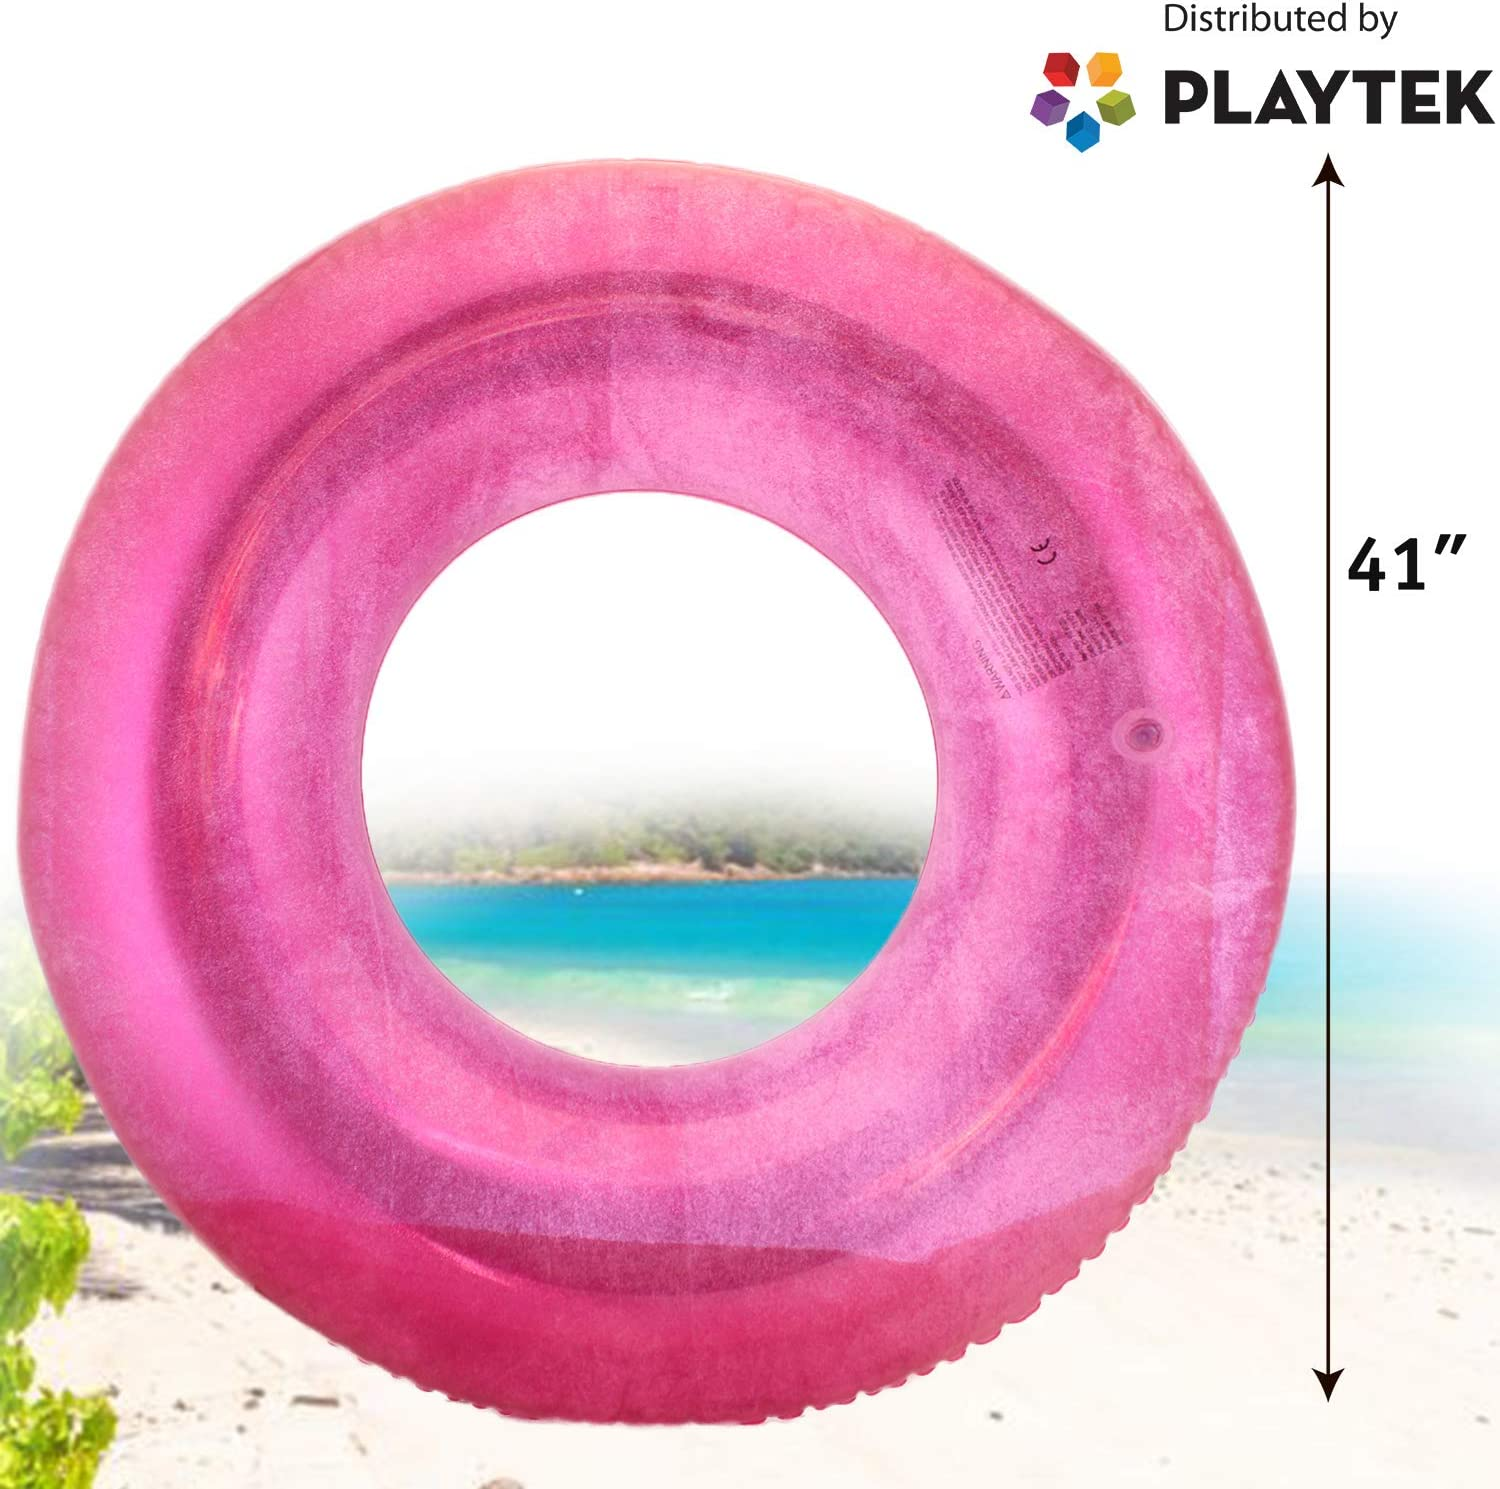 Large Round Blue Glitter Swim Tube Durable Floats for Swimming on Beach Playtek Giant Pool Float Ring Pool Water Sports